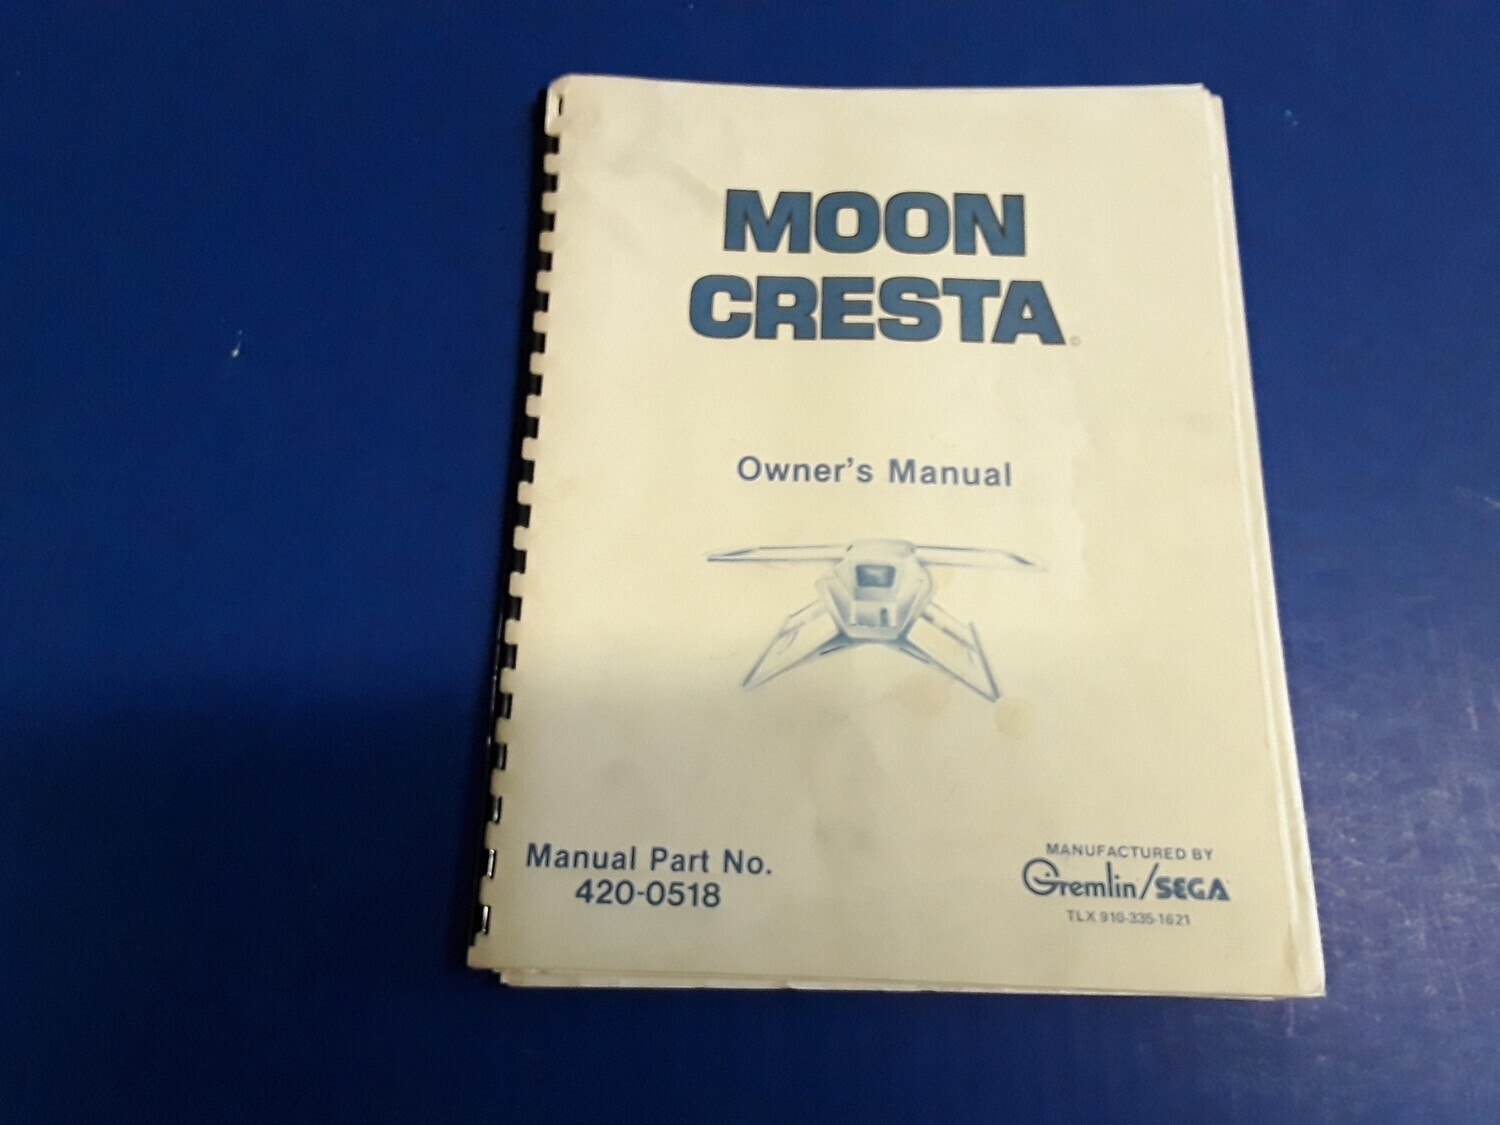 You Choose Which One. Decent Condition Sega Gremlin Video Game Manuals